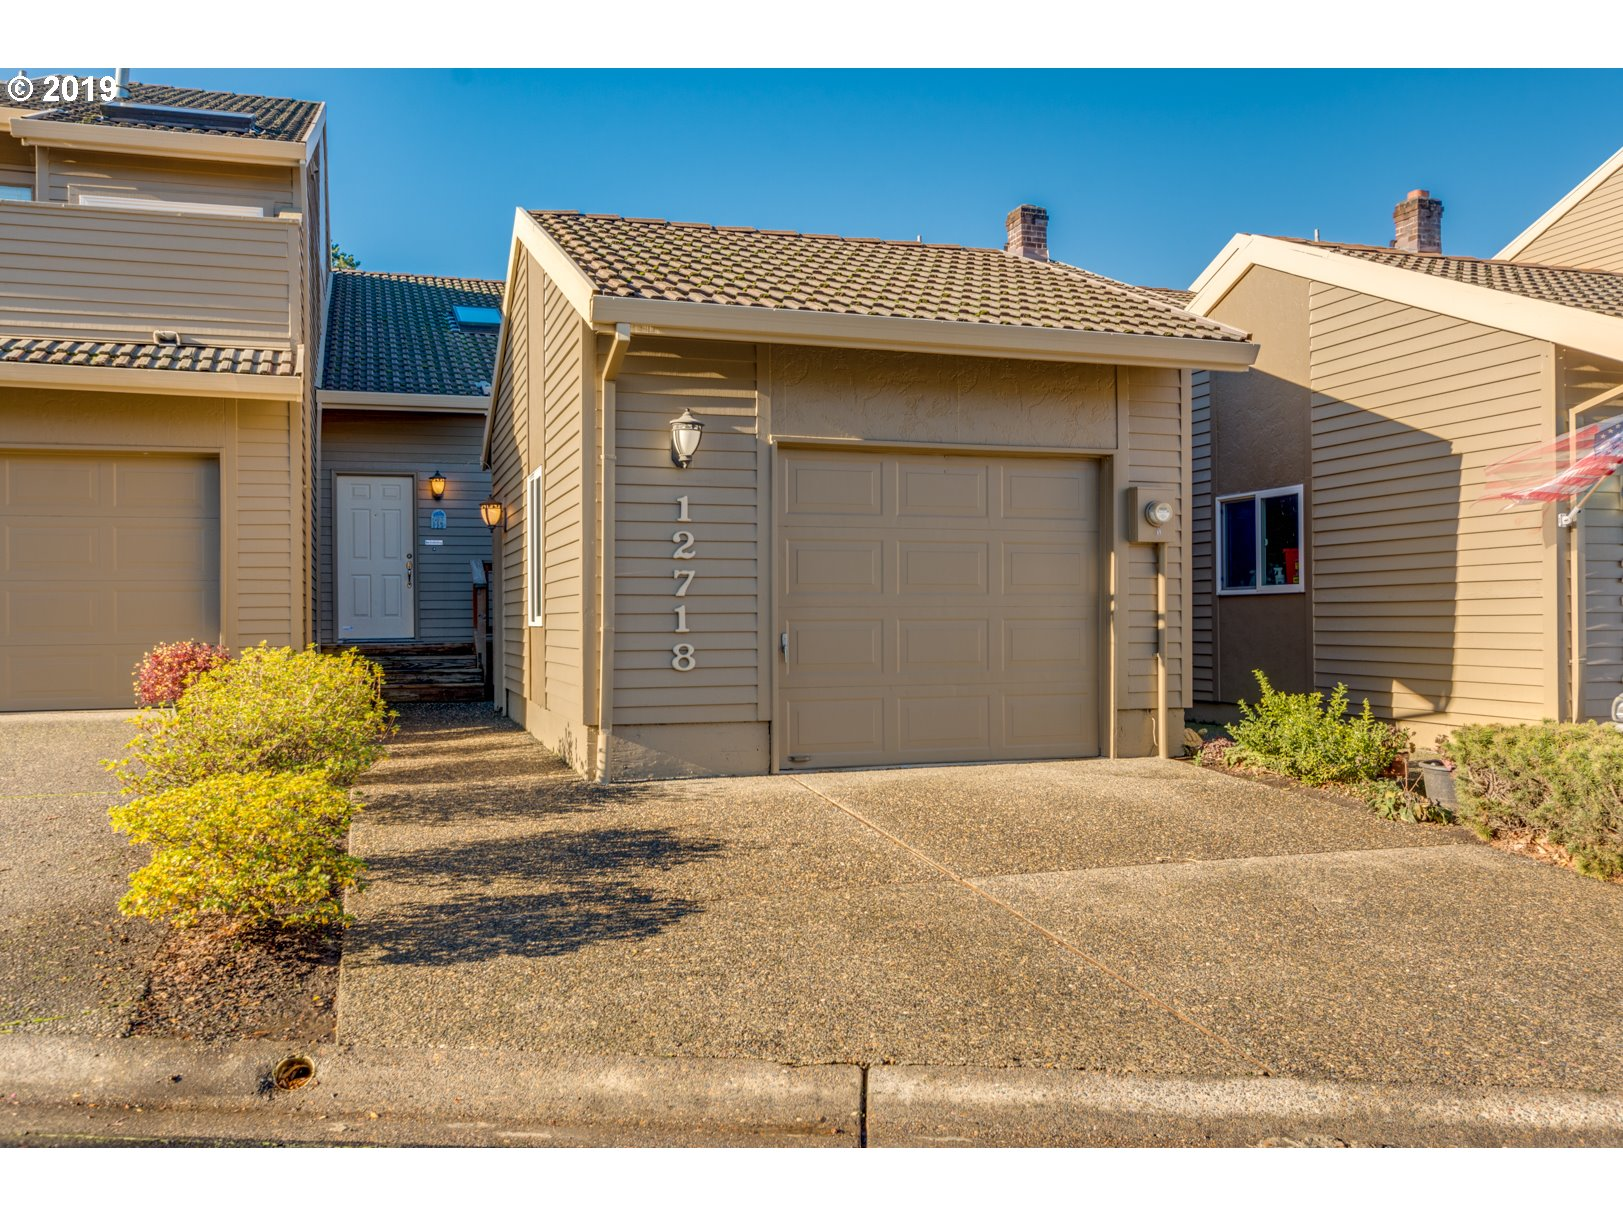 Great 1 bedroom attached home with vaulted ceilings and loft area perfect for guest bed or home office. Master has walk-in closet and bathroom with tub and shower. Newer appliances and exterior paint. Great park-like setting makes this home a great choice for the first time home buyer or someone looking to downsize. Call for details.